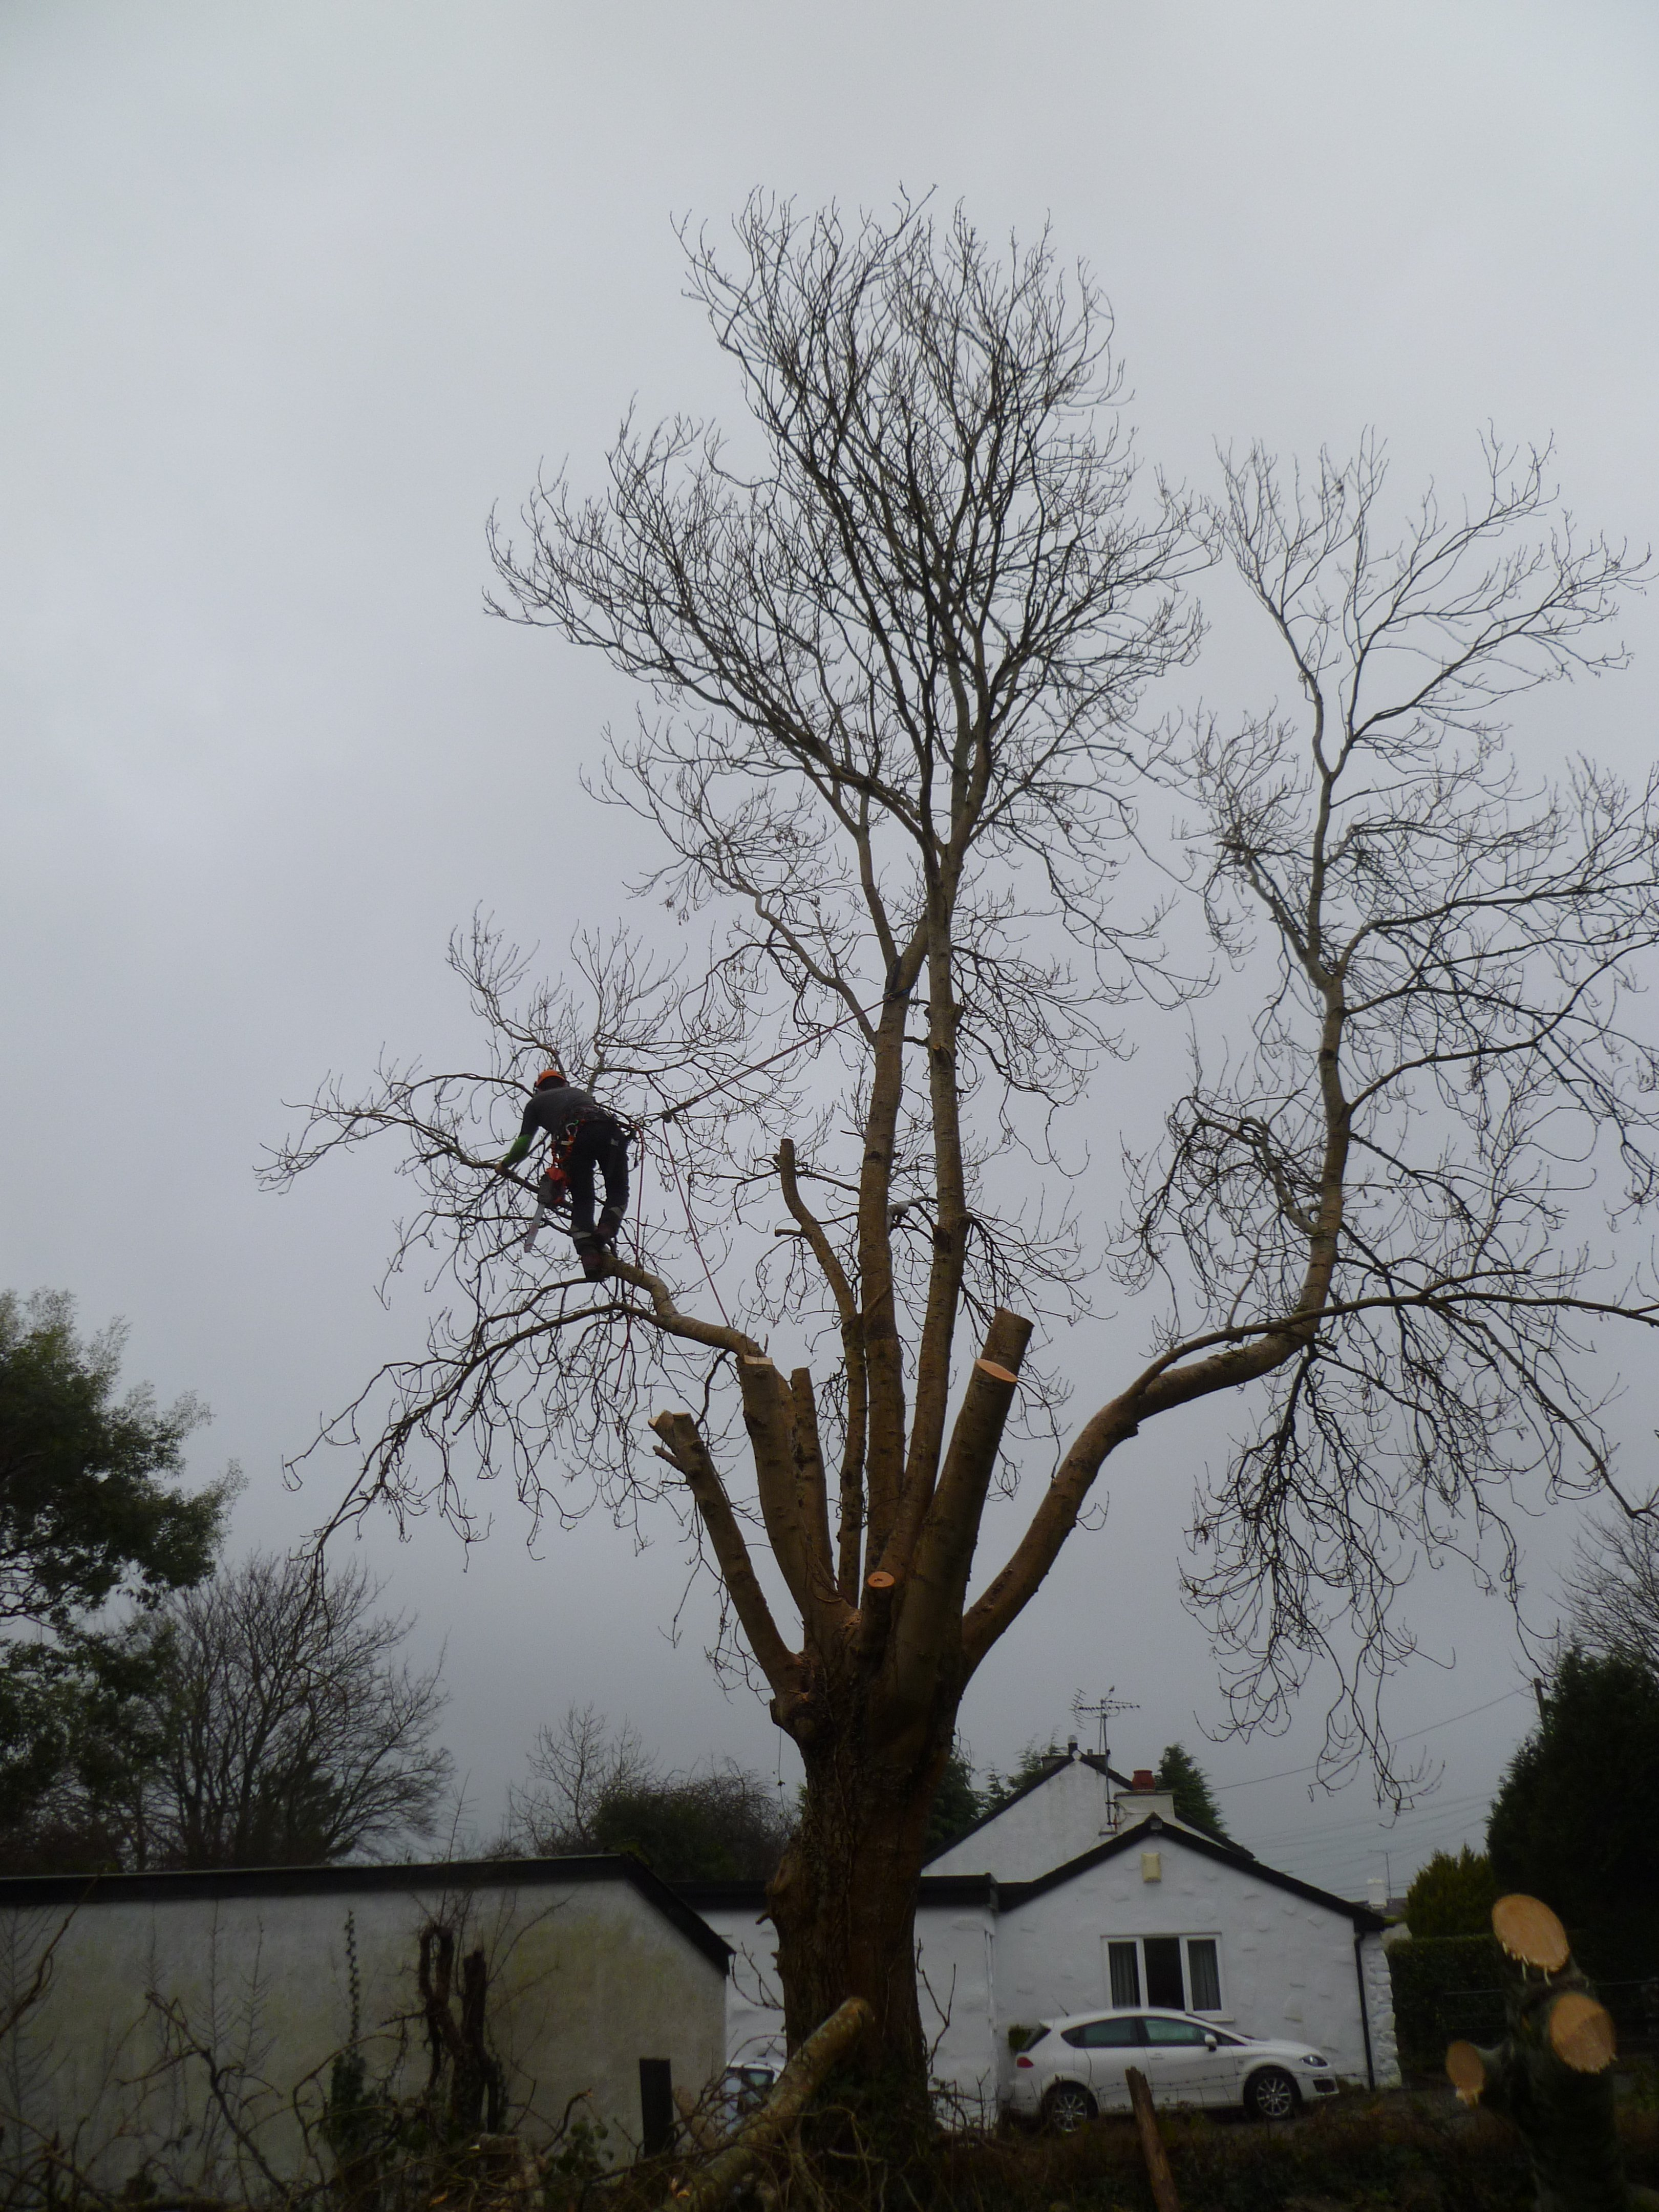 Tree surgeon in the process of dismantling the Ash tree over the garage.